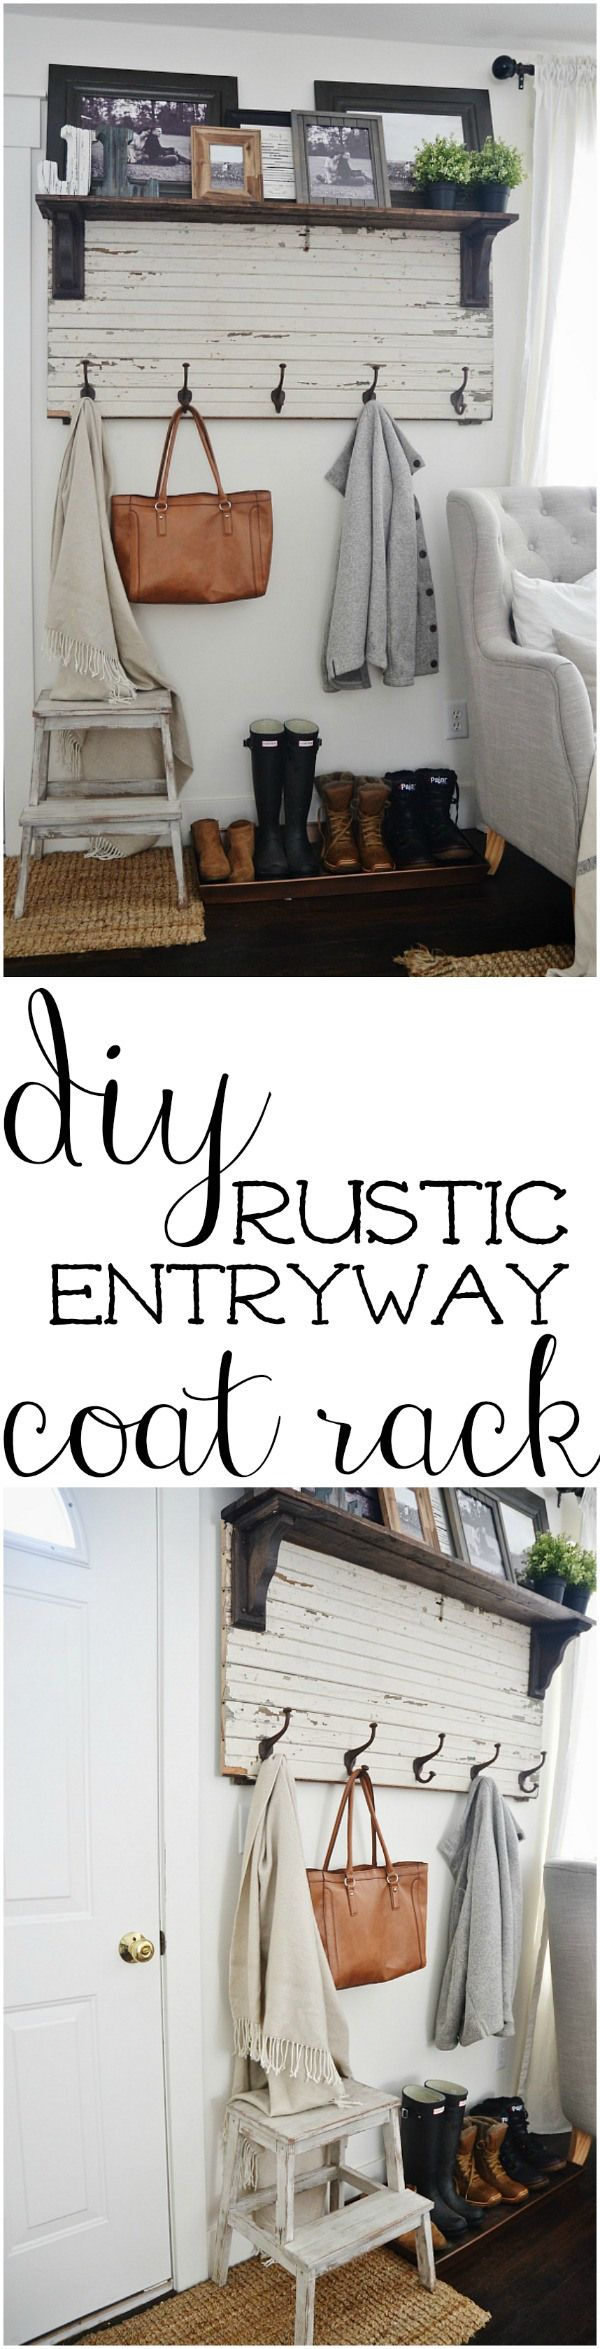 DIY rustic entryway coat rack - A super simple way to create organization in any size entryway or mud room.